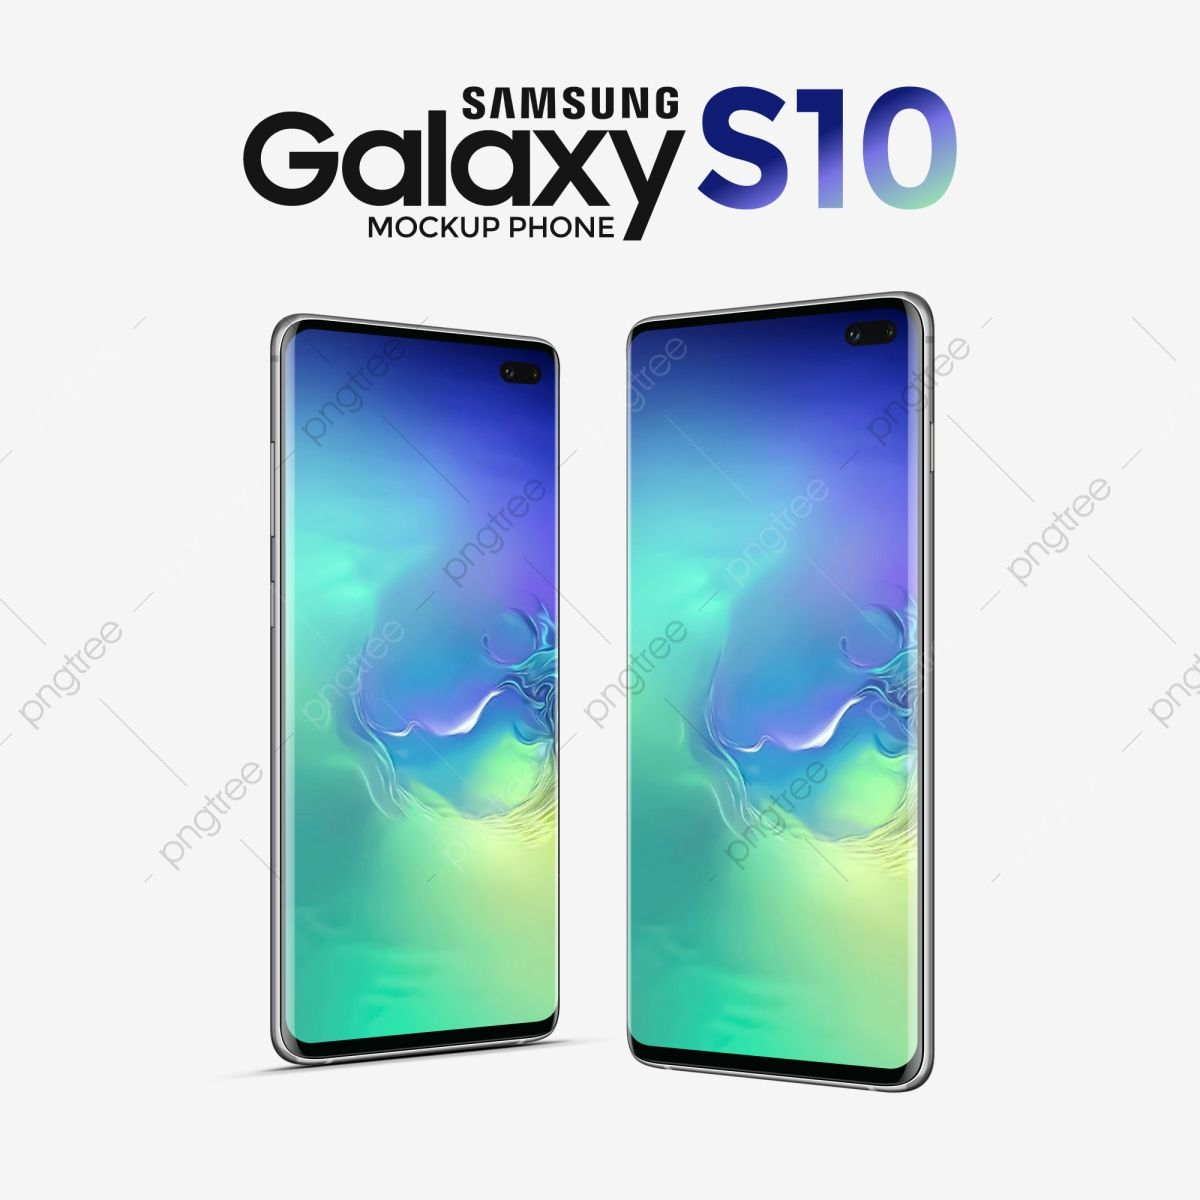 Samsung Galaxy S10 Mockup Green Blue Phone Smartphone Hand Png Transparent Clipart Image And Psd File For Free Download Samsung Samsung Galaxy Galaxy